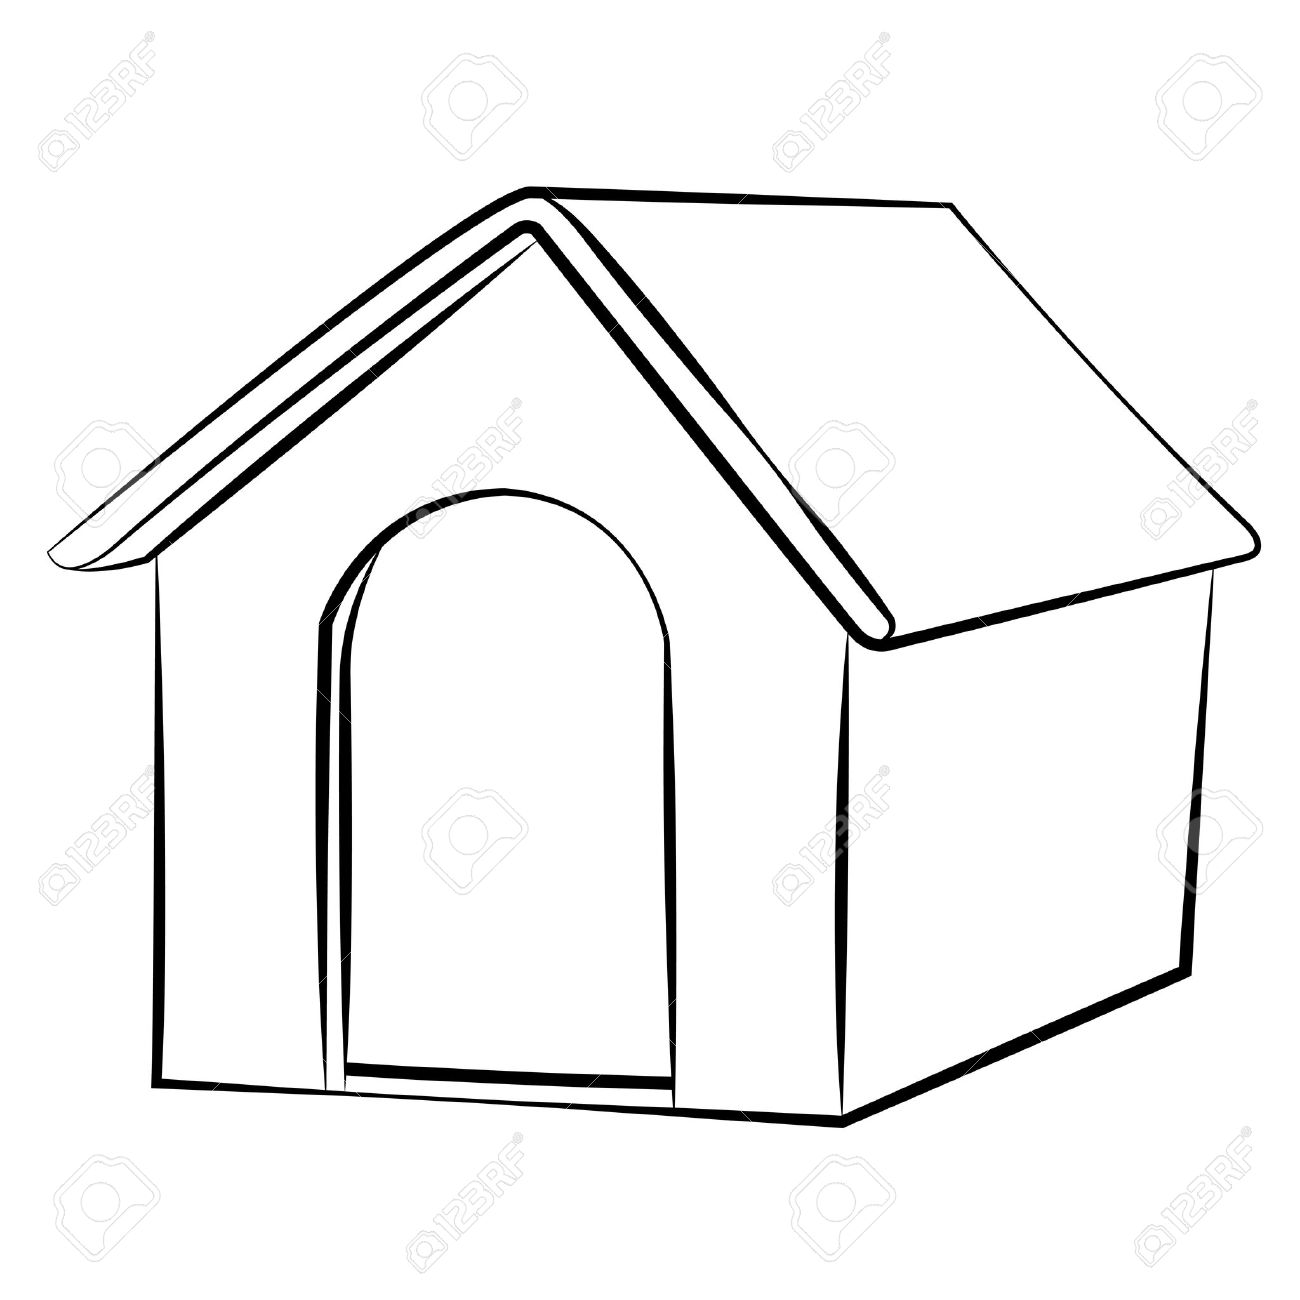 35  Beste animated house for Animated House Black And White  555kxo